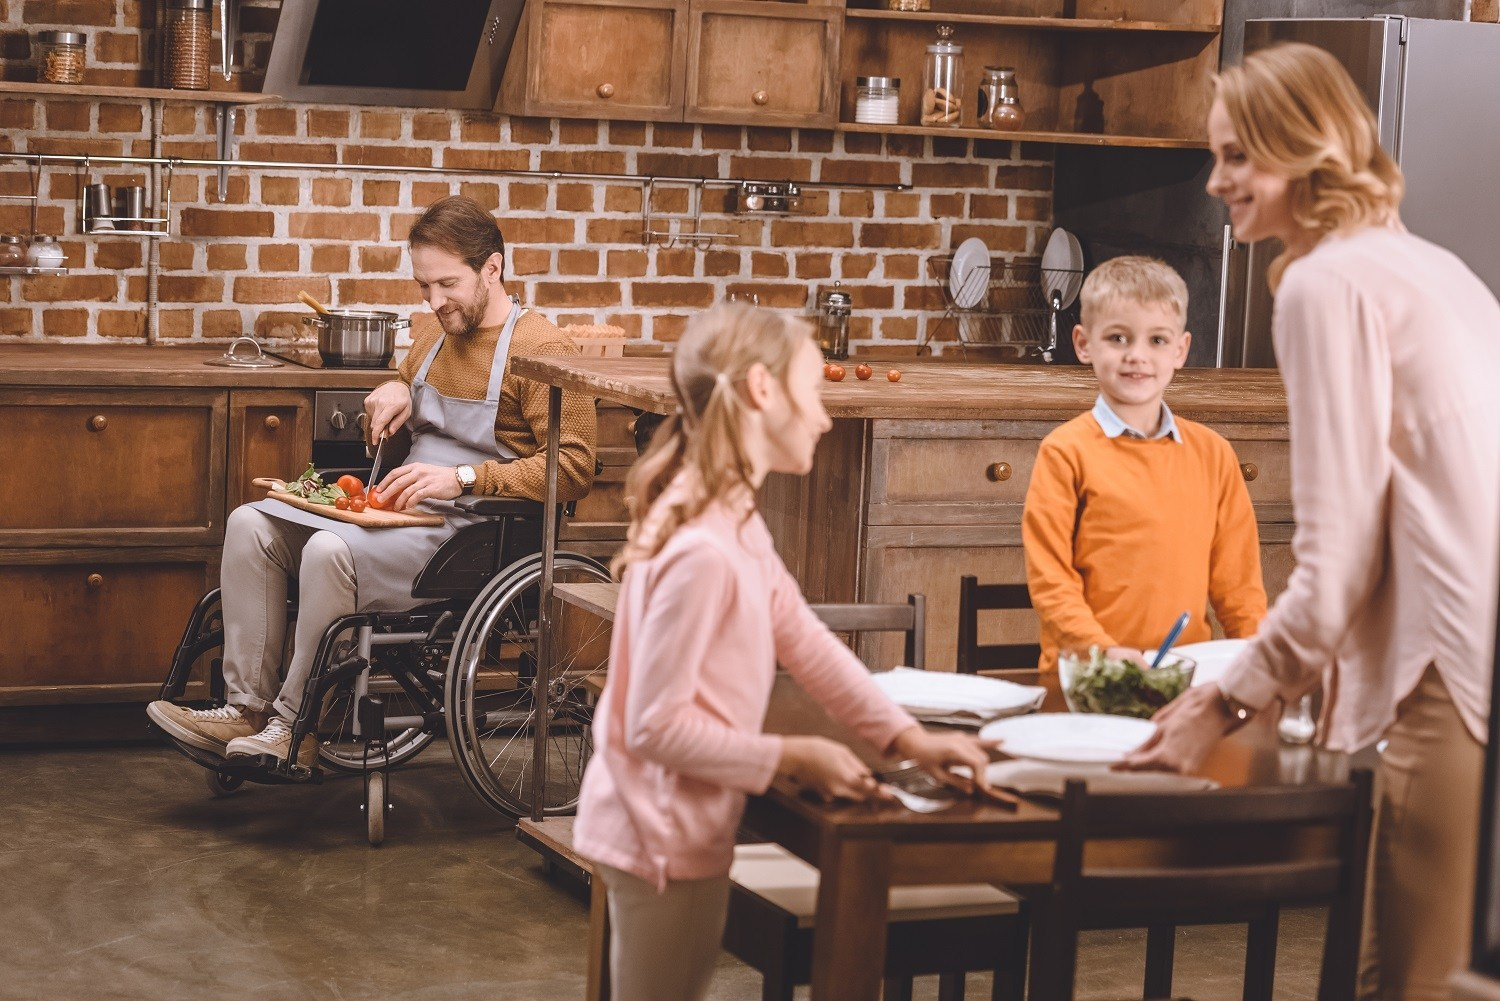 A woman and two children set the table while a man, seated in wheelchair, chops some vegetables